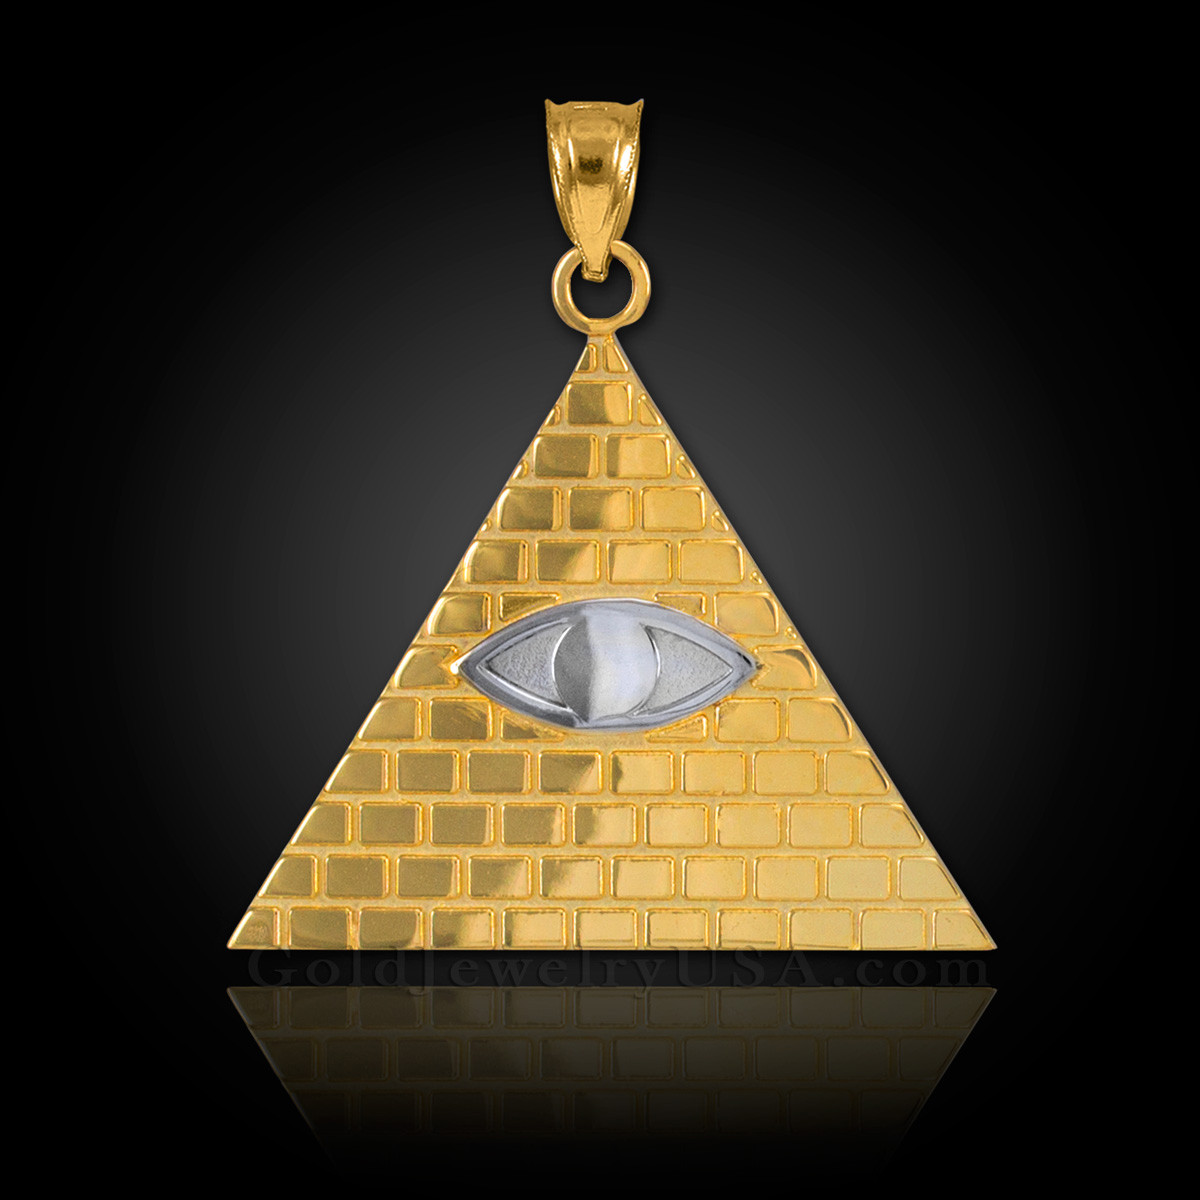 Gold Illuminati Pyramid All Seeing Eye Pendant Ebay